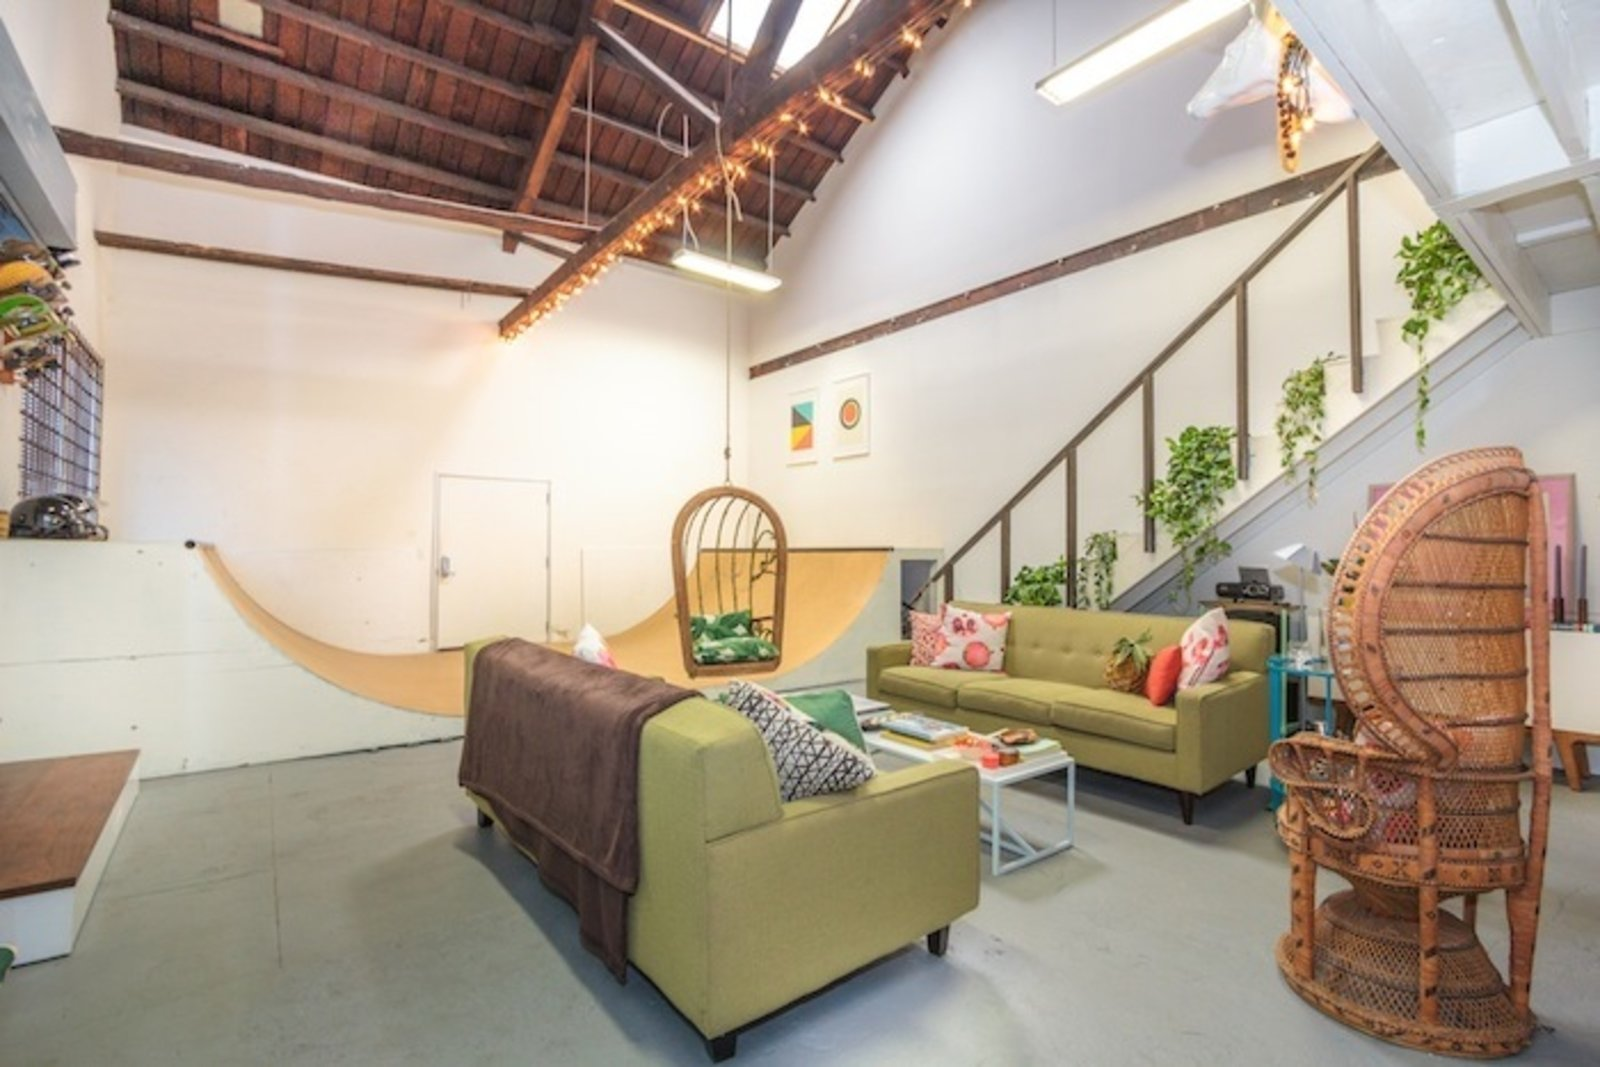 Modern Loft with Designer Halfpipe (Los Angeles, USA)  Photo 3 of 16 in 15 Modern Summer Rentals